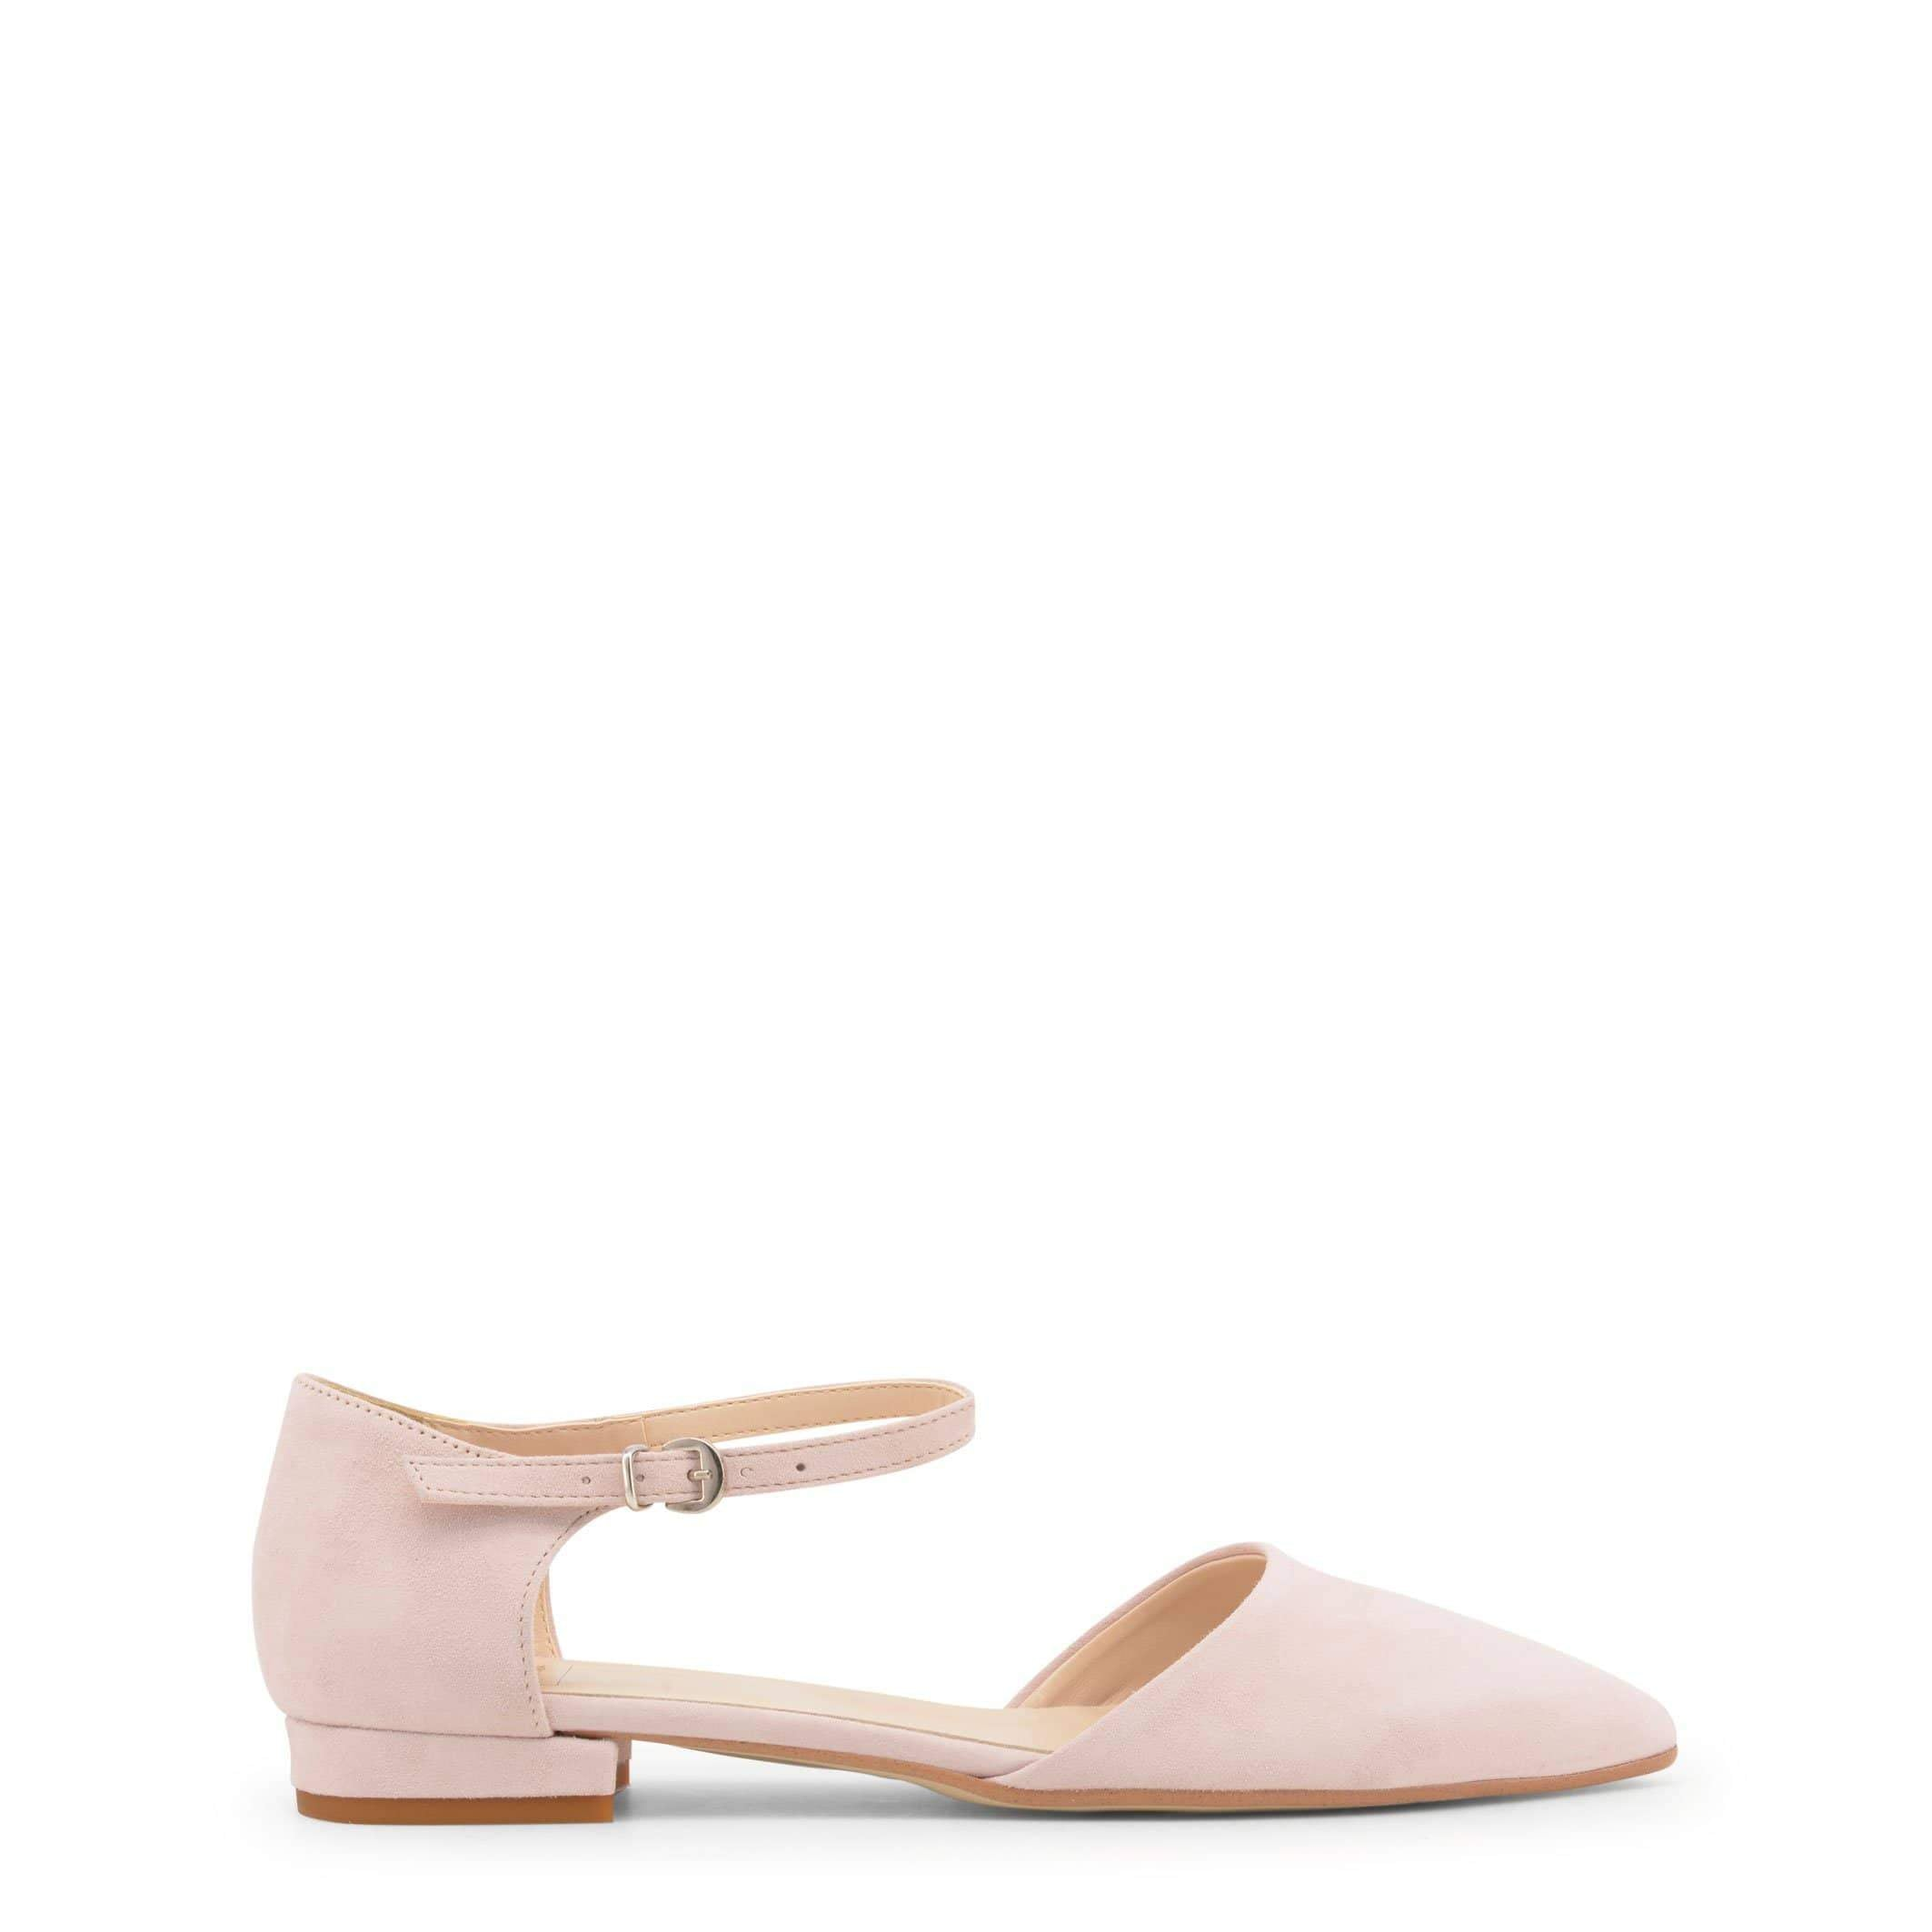 Made in Italia Shoes Ballet flats pink / 36 Made in Italia - BACIAMI